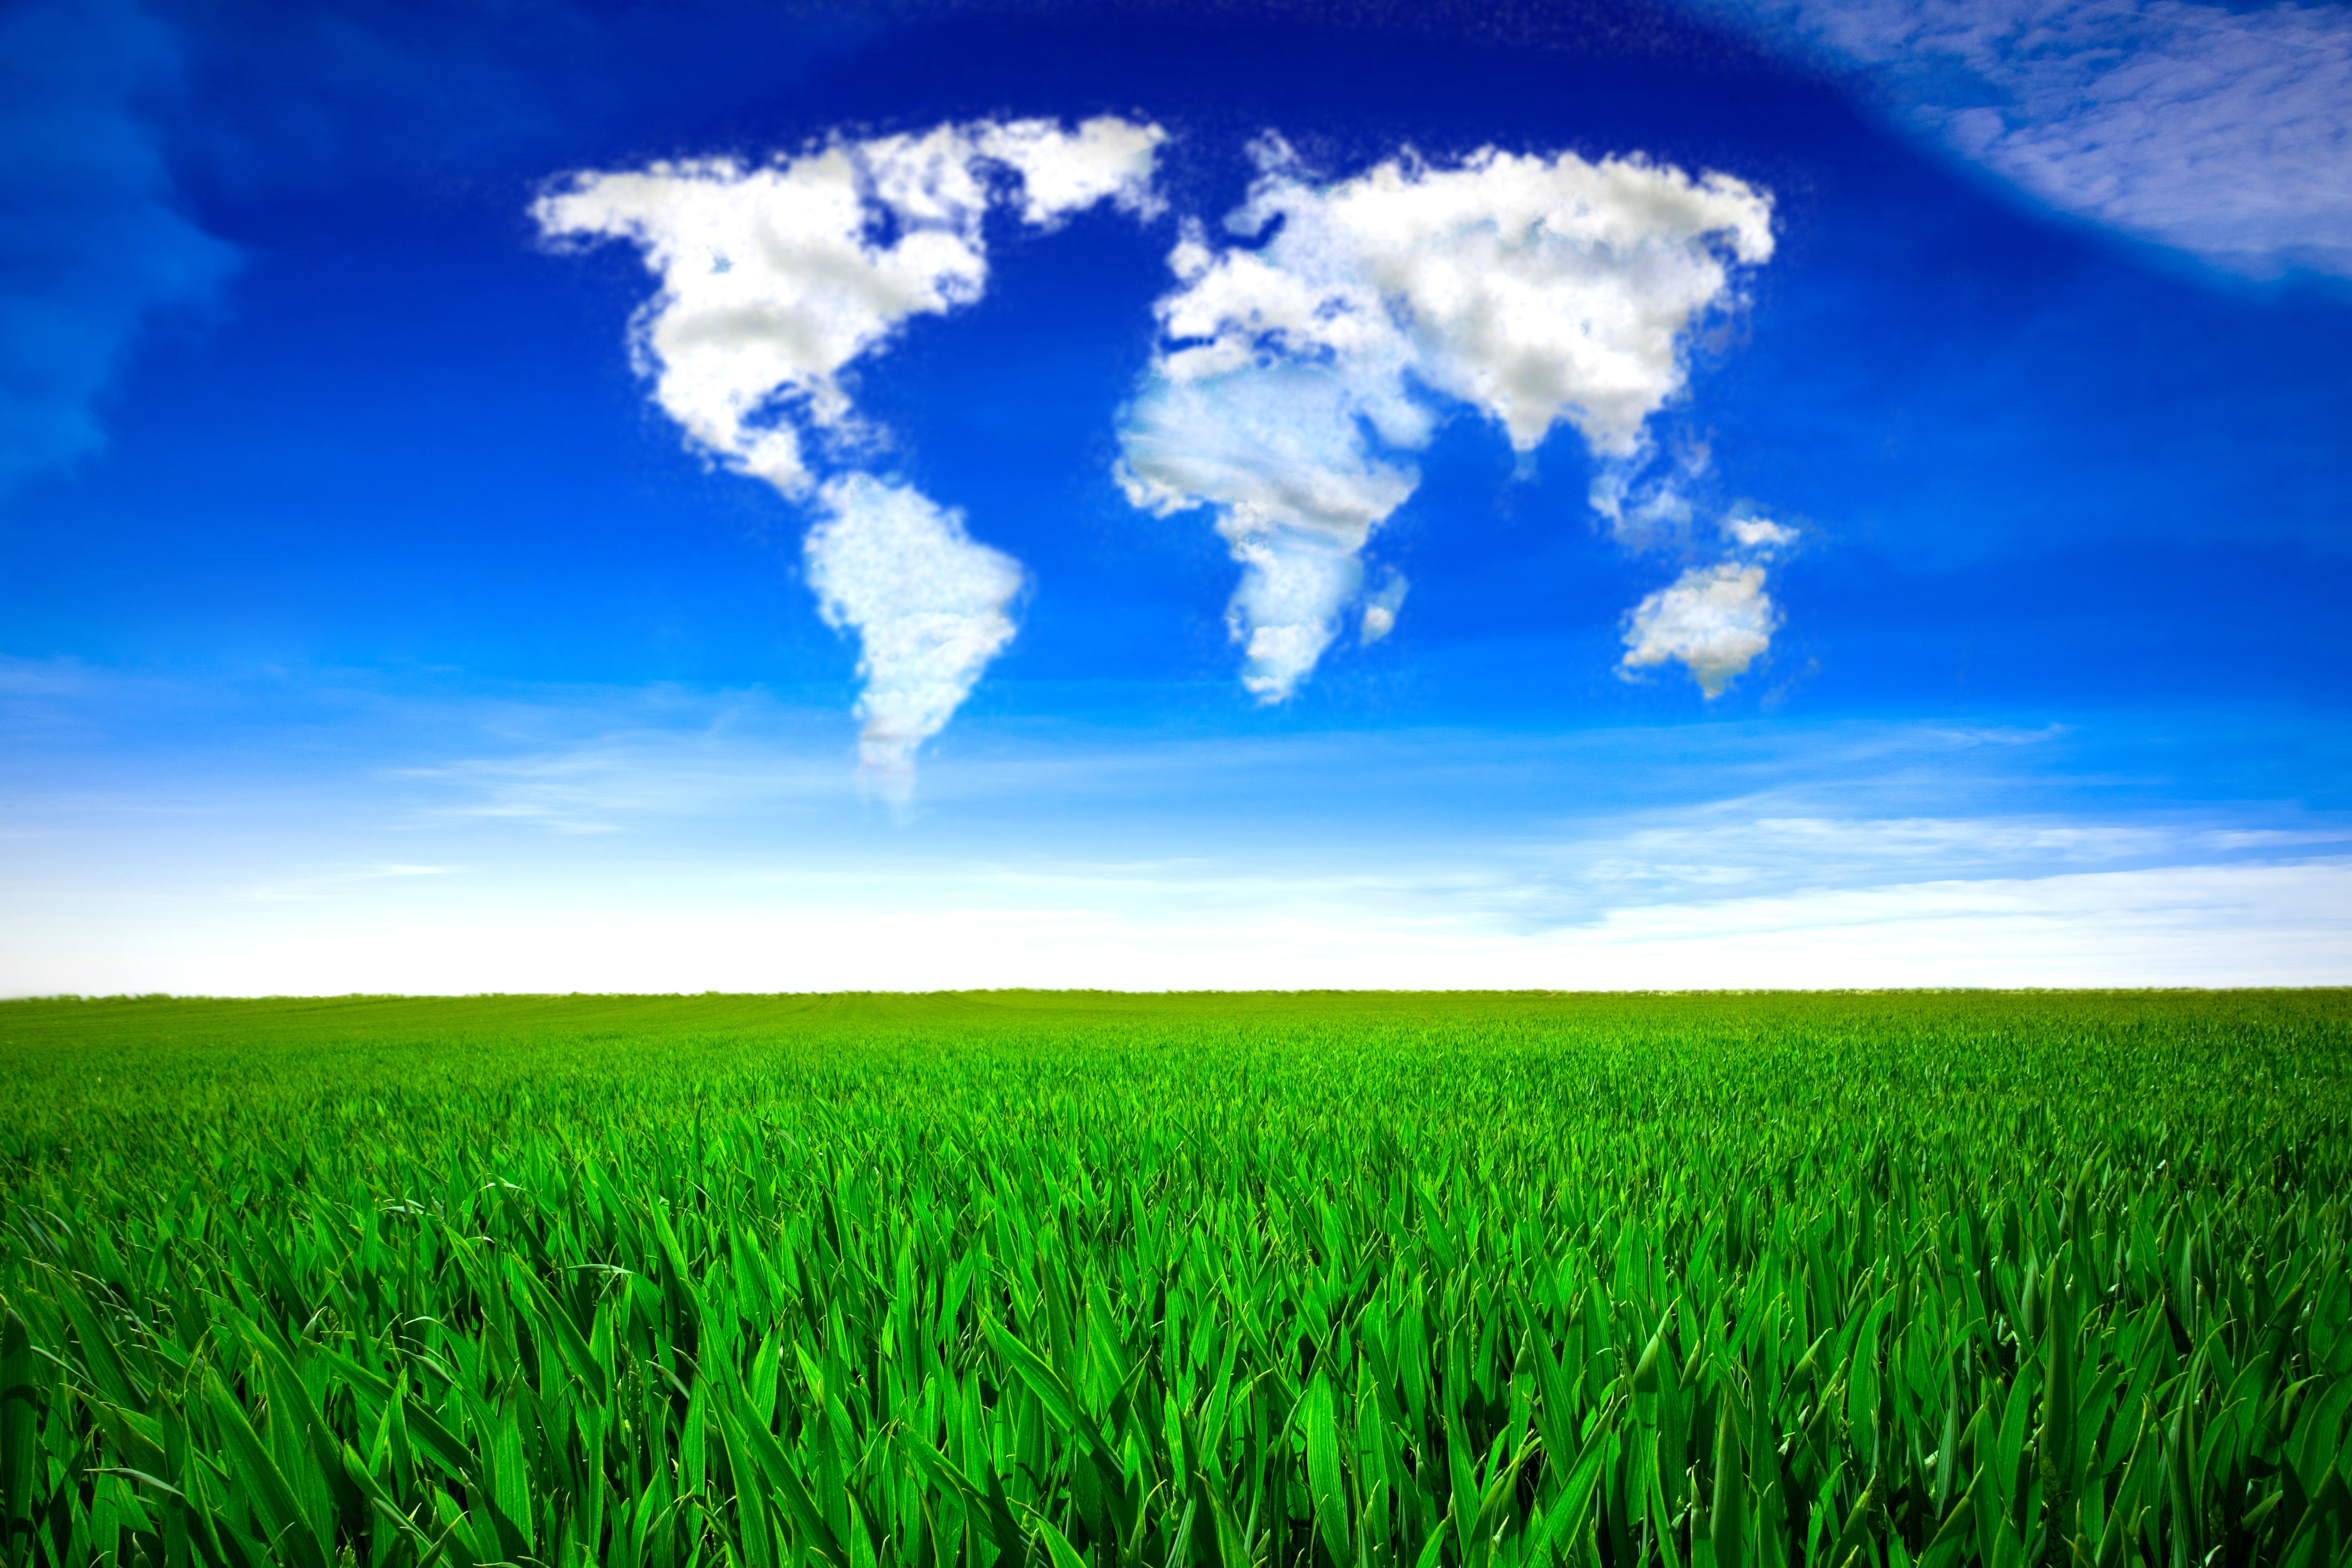 Grass field with clouds in the form of a world map